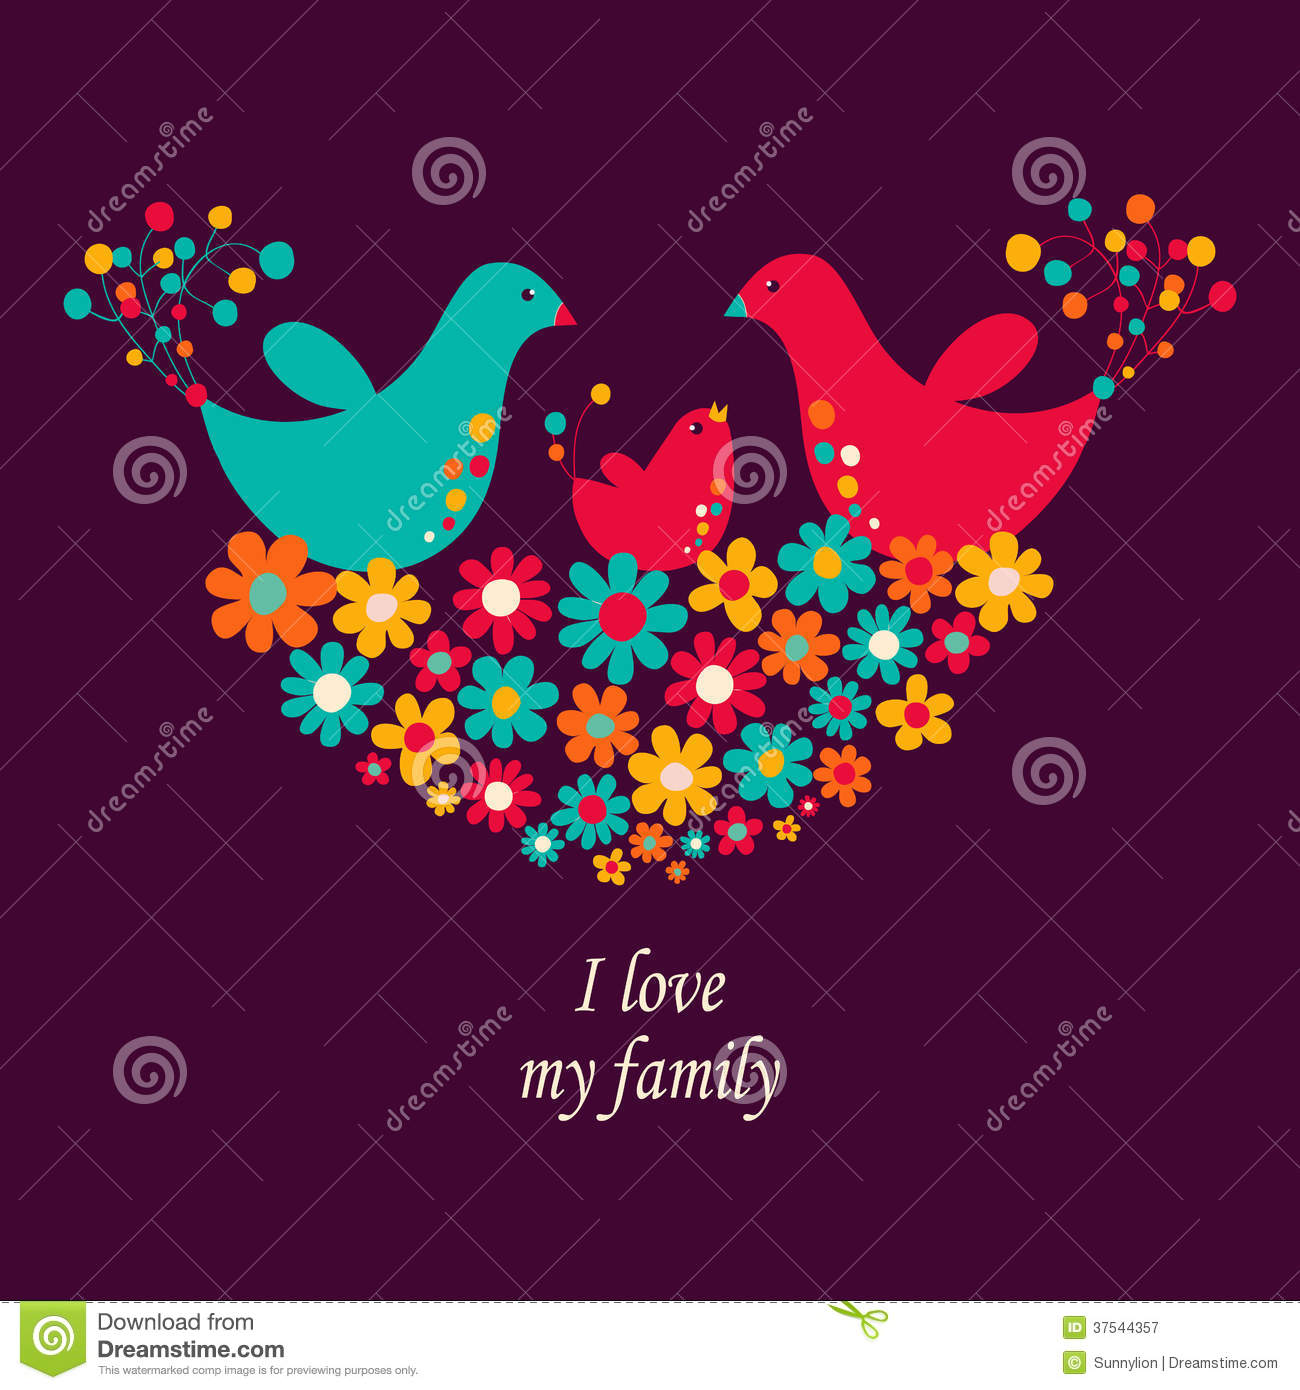 Illustration I Love My Family Stock Illustration Illustration Of